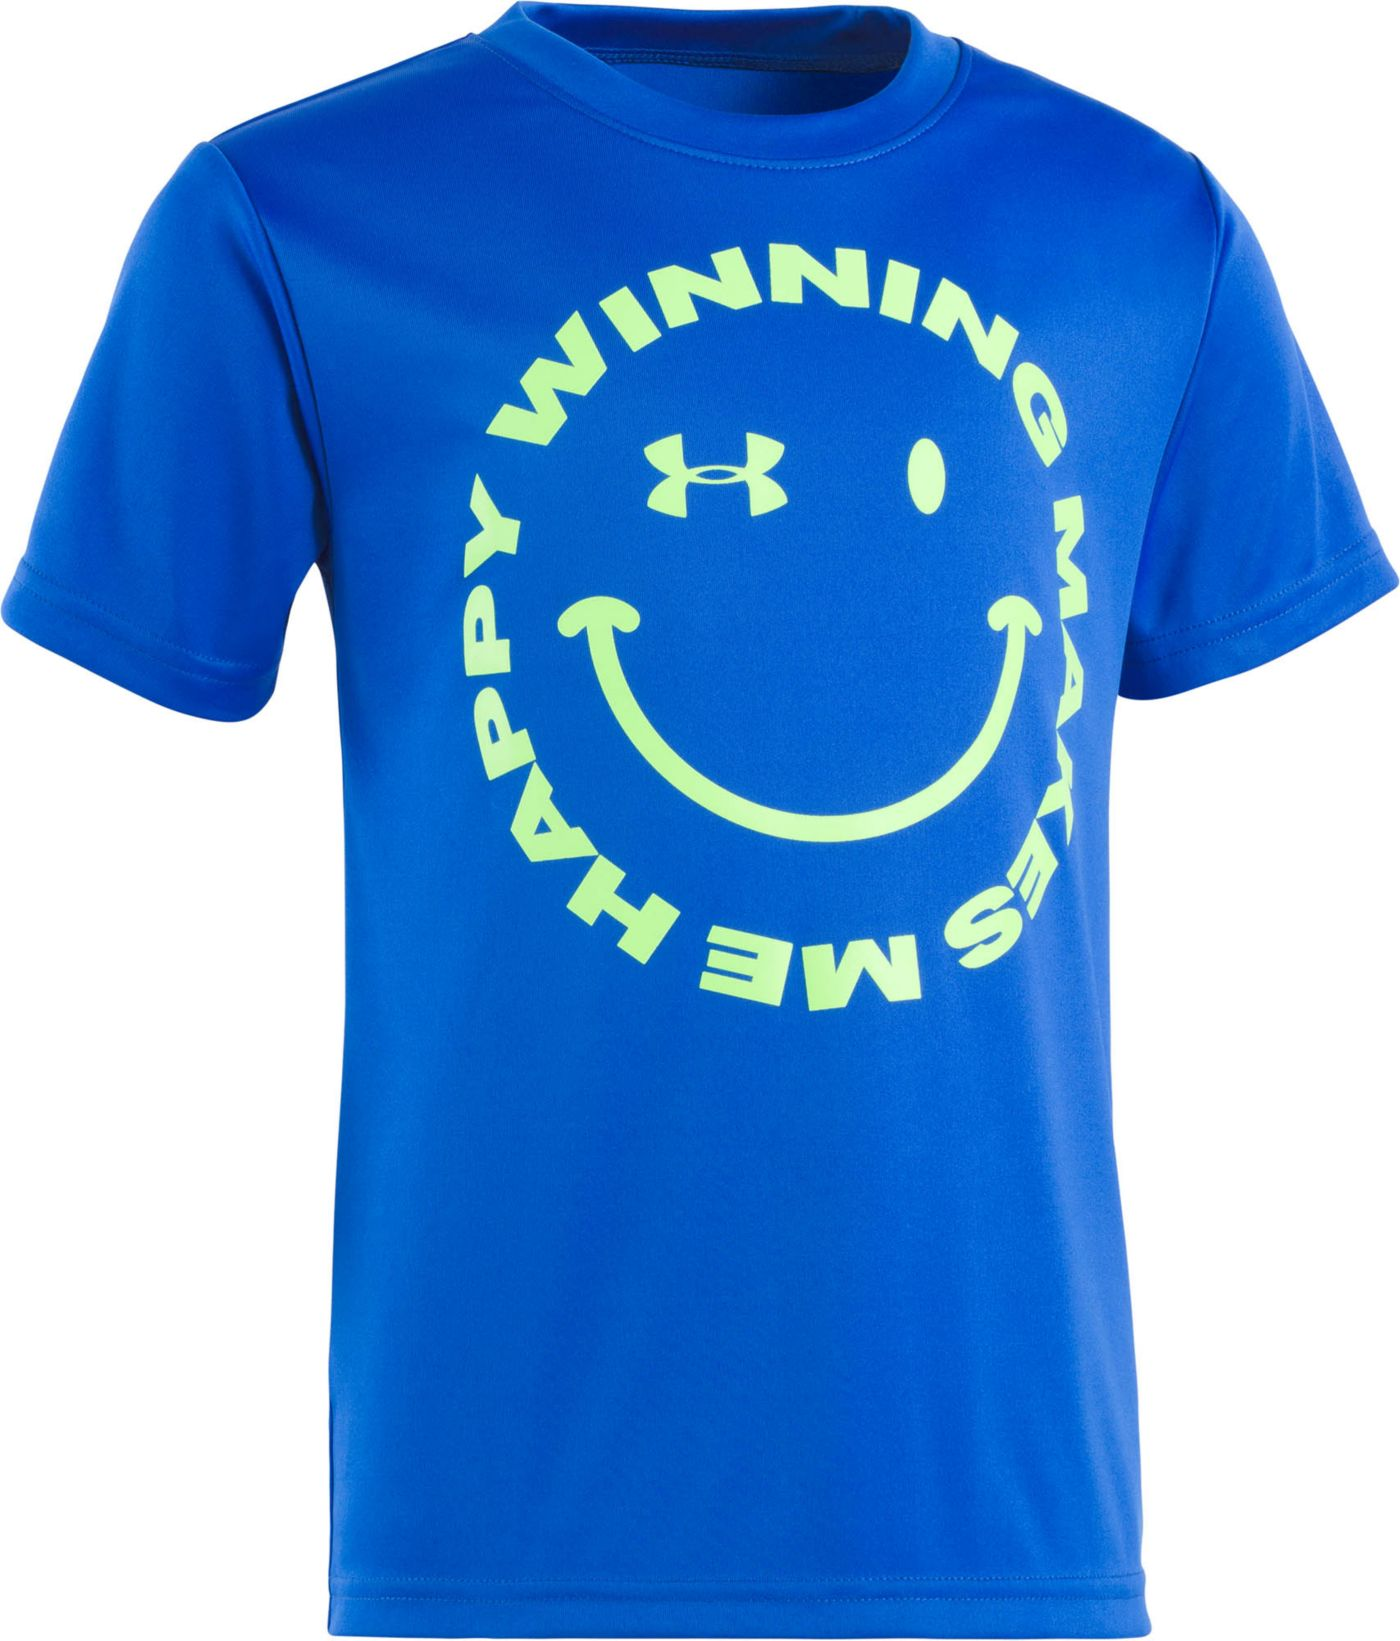 Under Armour Little Boys' Winning Makes Me Happy Graphic T-Shirt